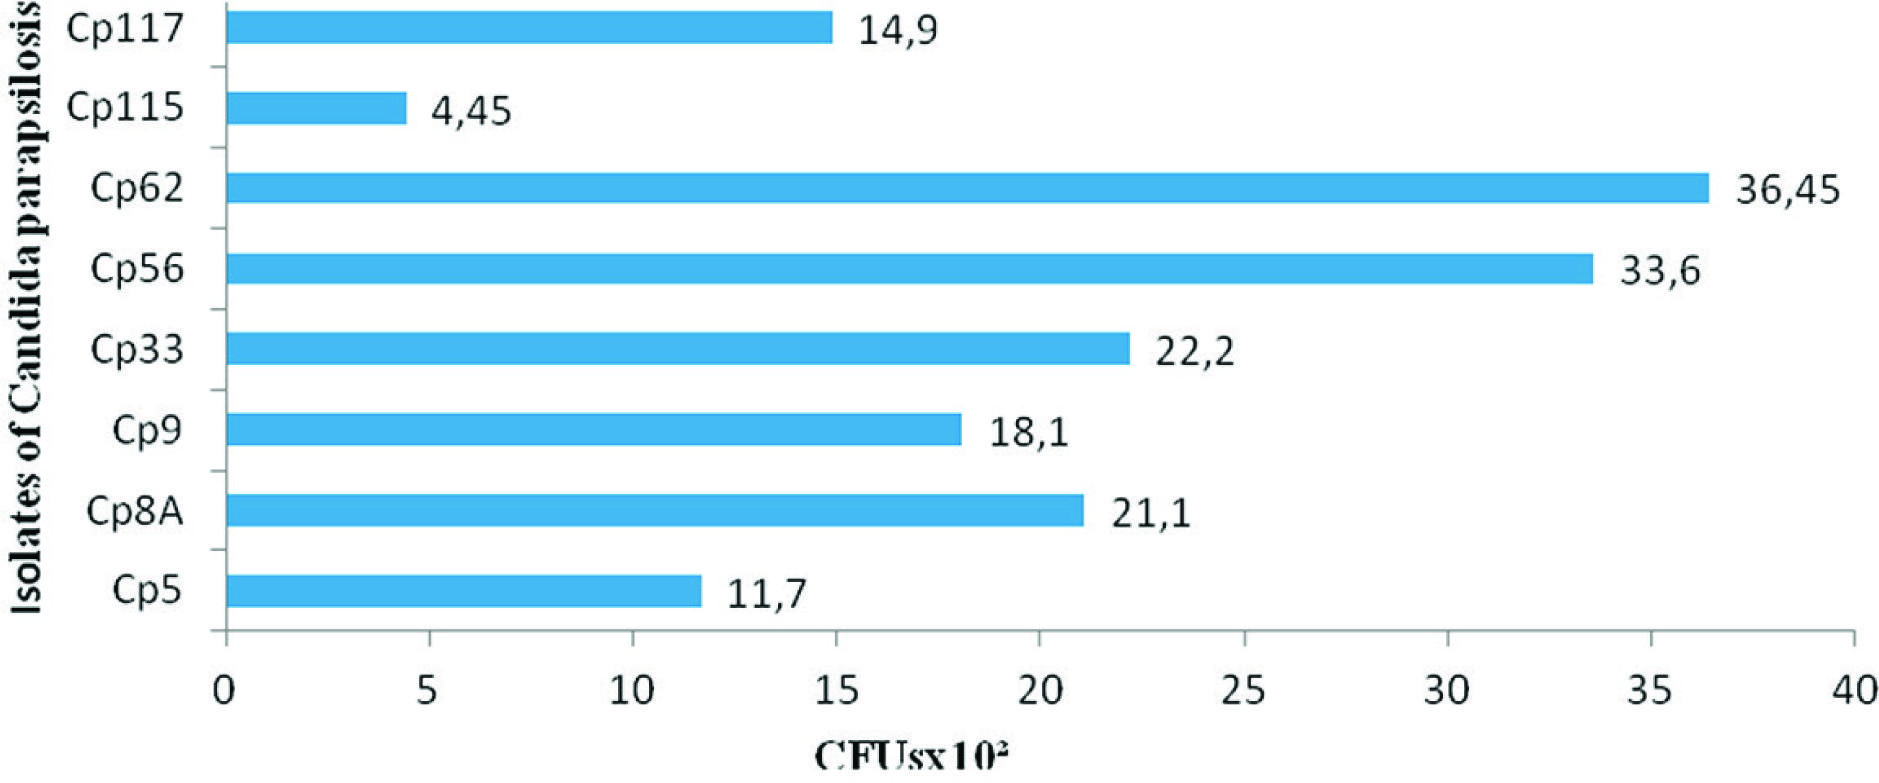 Distribution of the number of cells per CFUs x 102 in the formation of biofilm isolates of C. parapsilosis